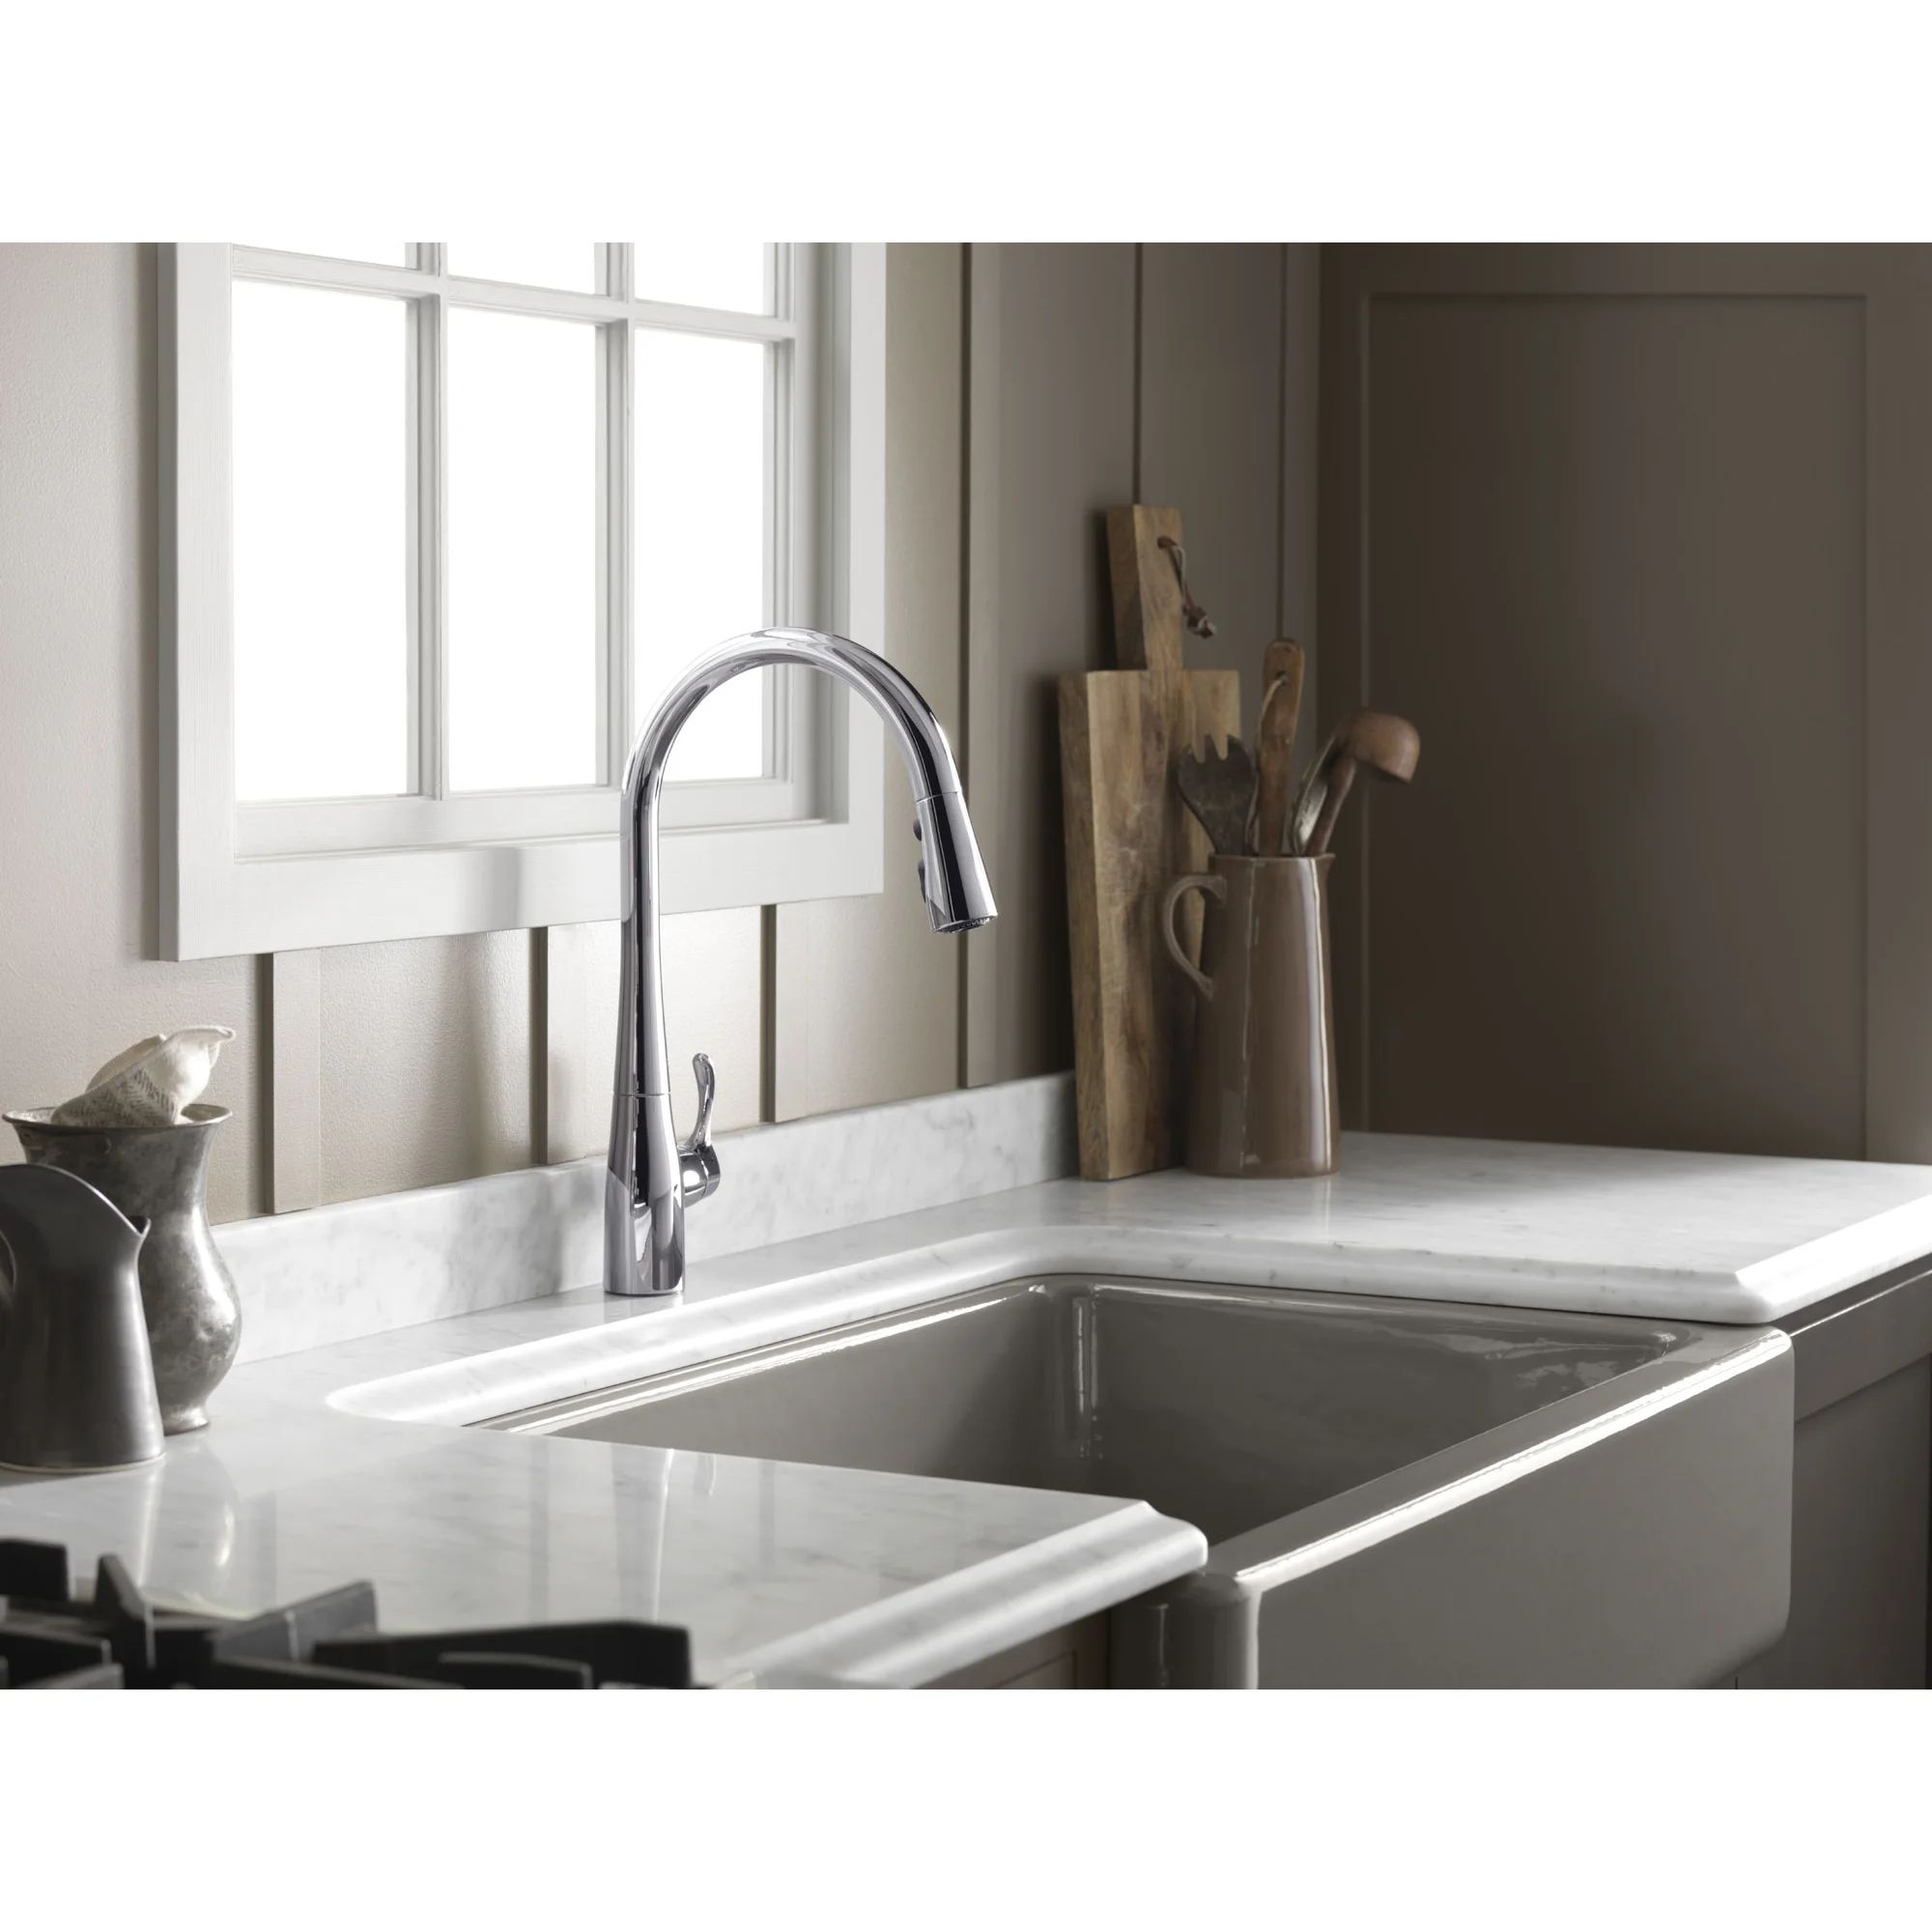 Simplice kitchen sink faucet with 16 5 8 pull down spout